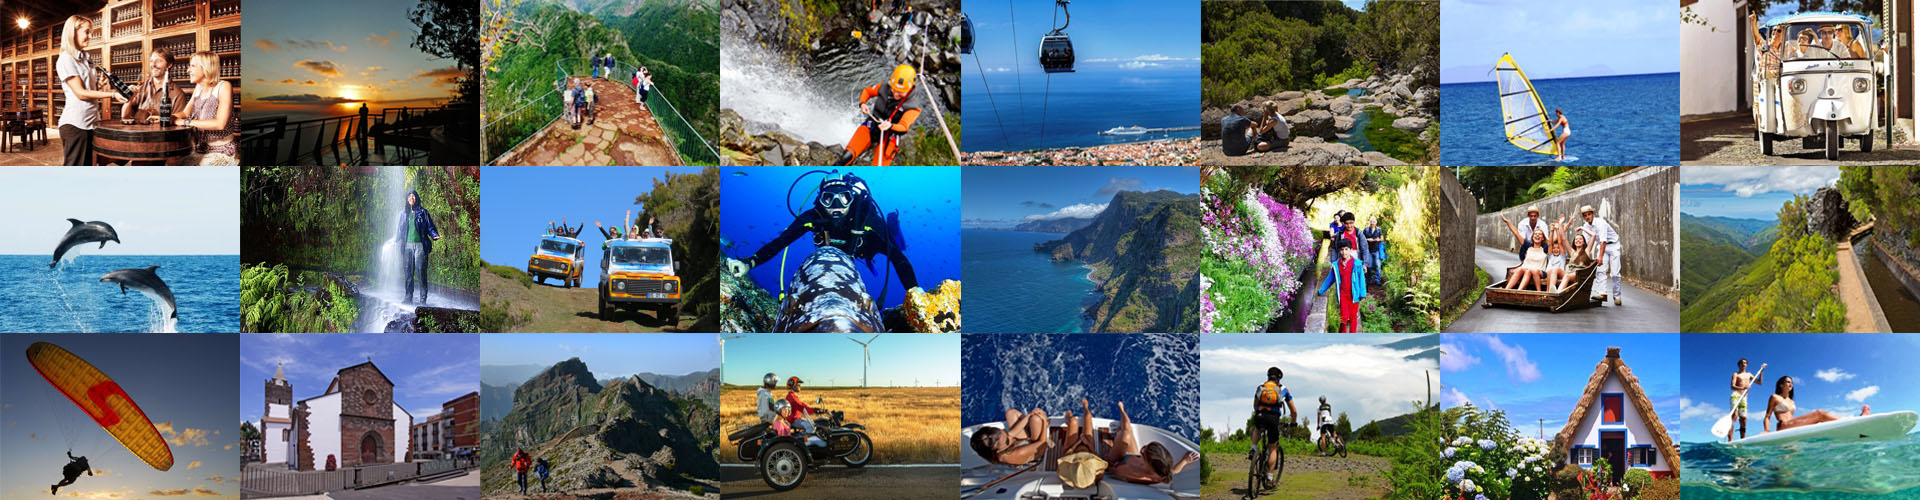 madeira guide - activities in madeira islands